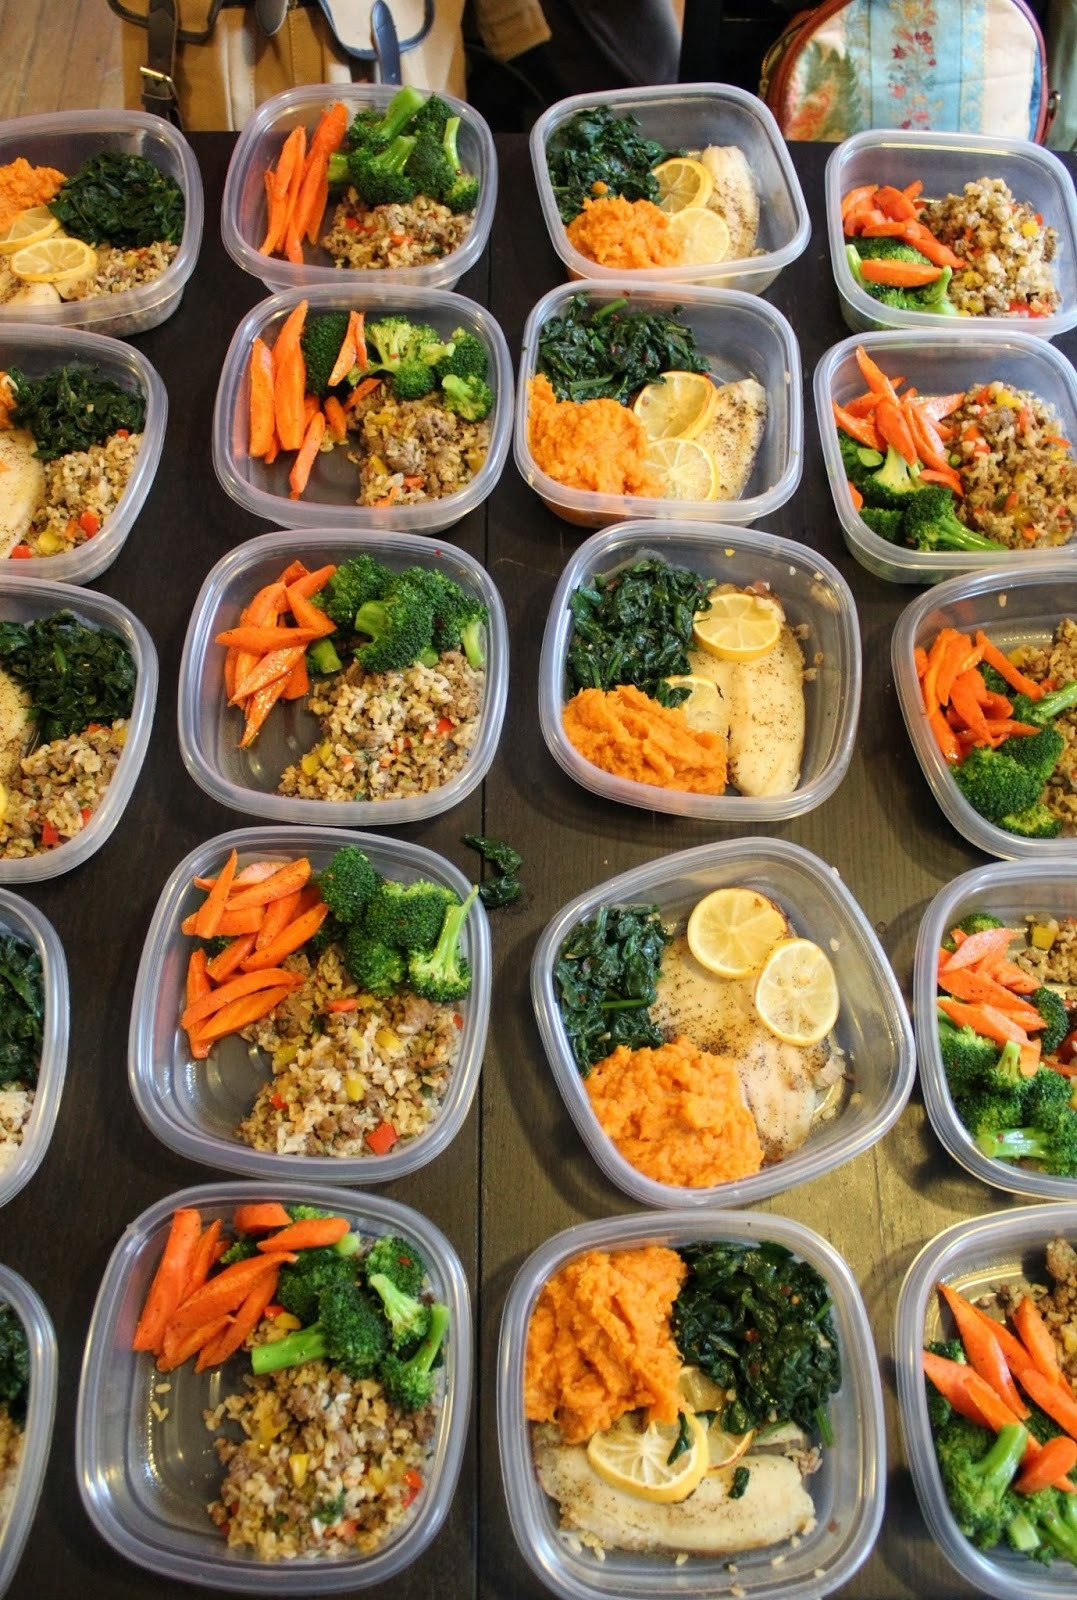 Easy Healthy Lunches To Go  Healthy Meal Prep Ideas For The WeekWritings and Papers